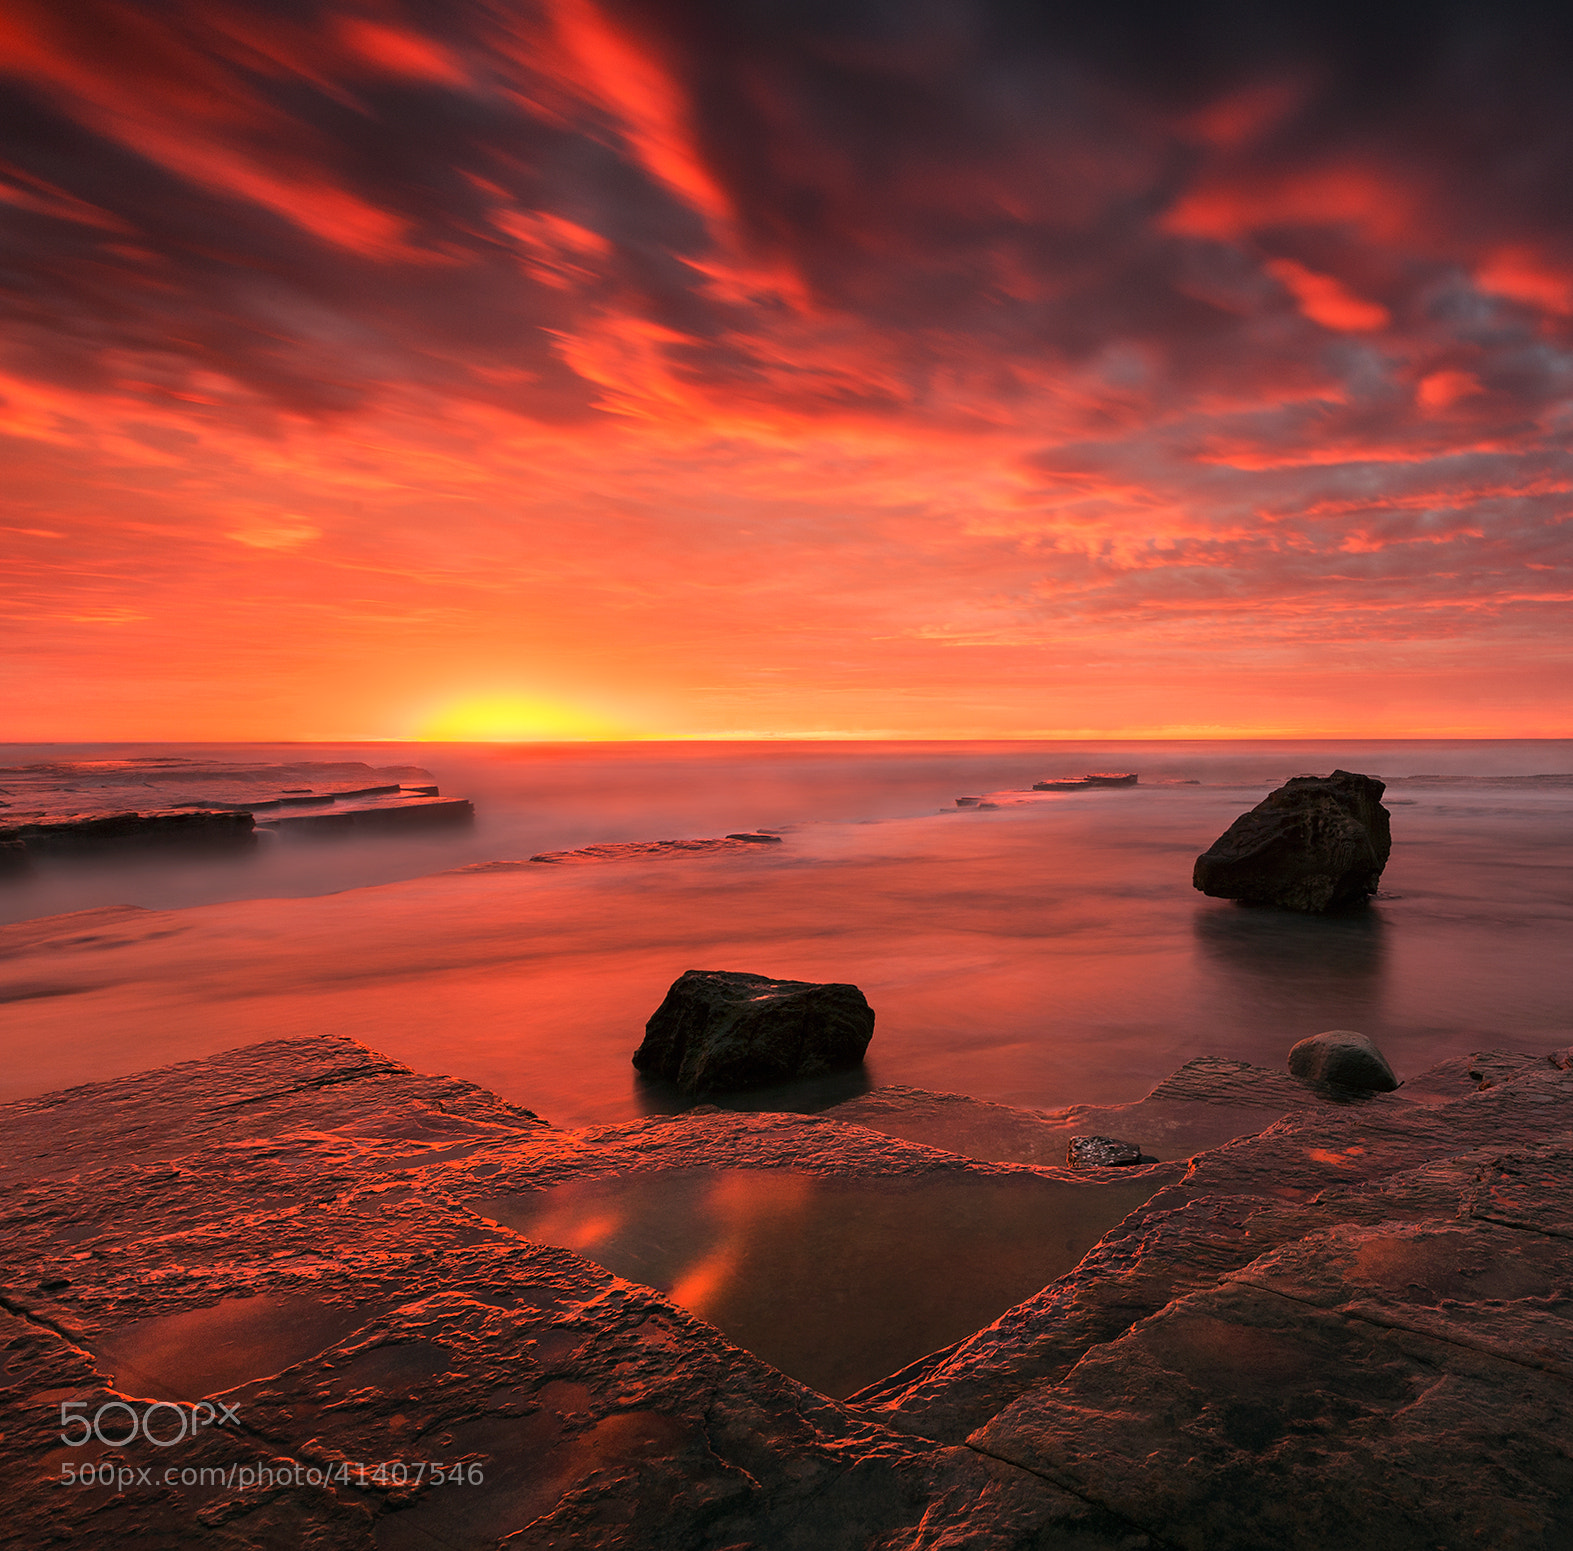 Photograph Red Zone by Goff Kitsawad on 500px